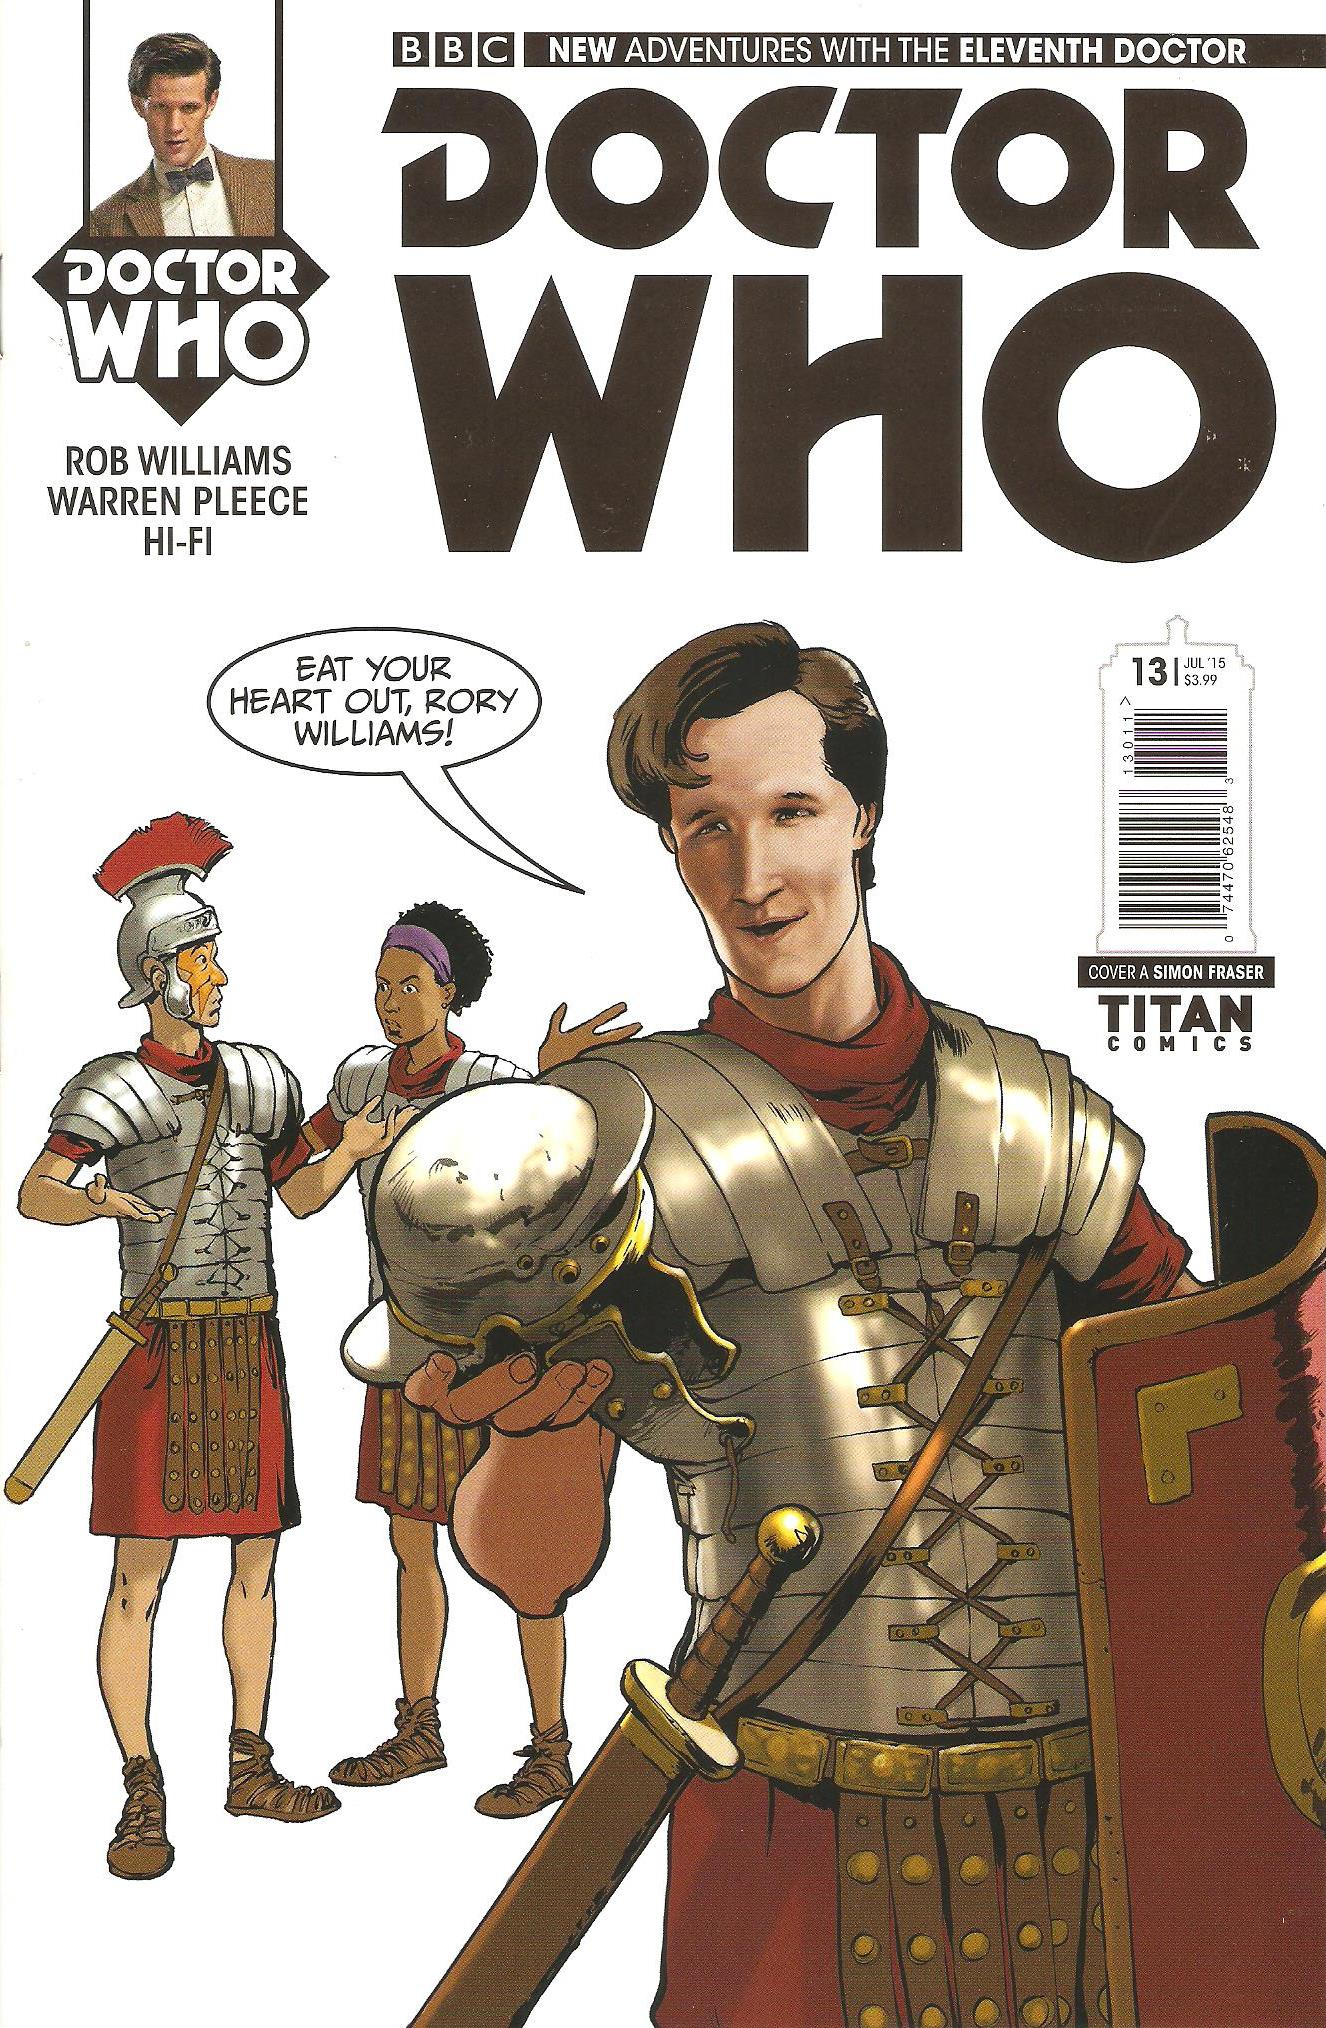 Eleventh doctor issue 13a